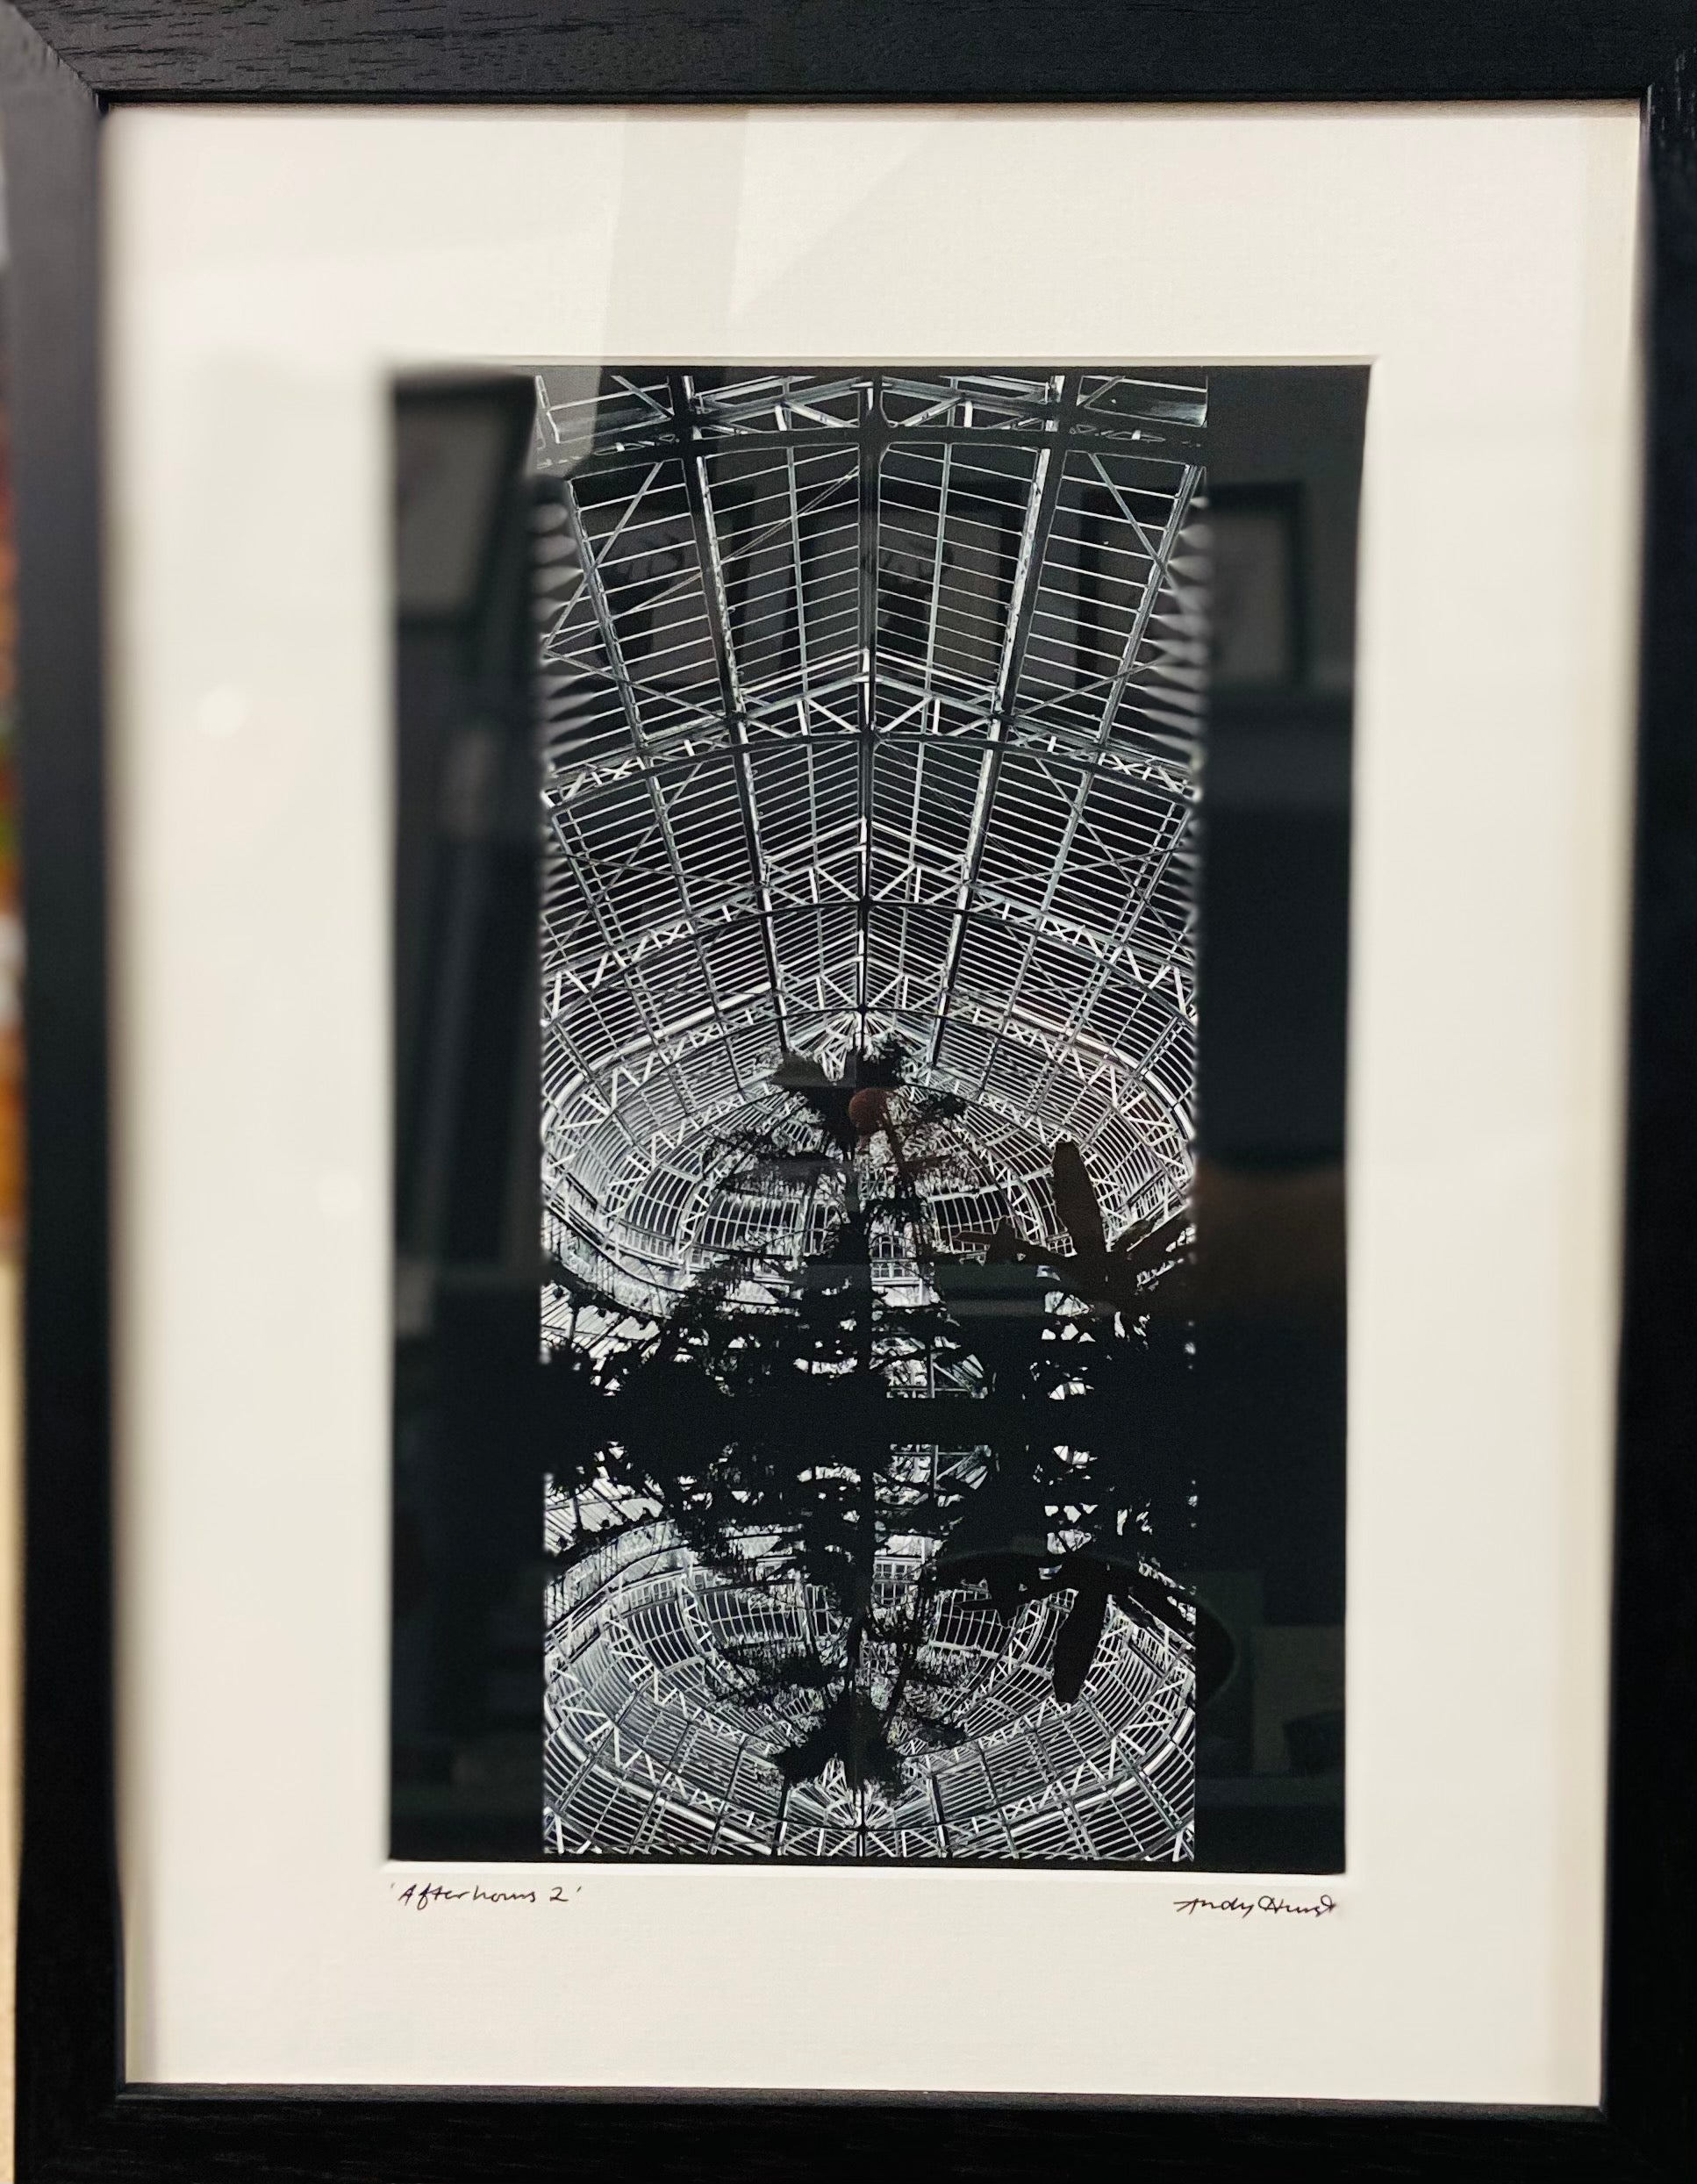 """Afterhours 2"" Framed and Mounted Print"